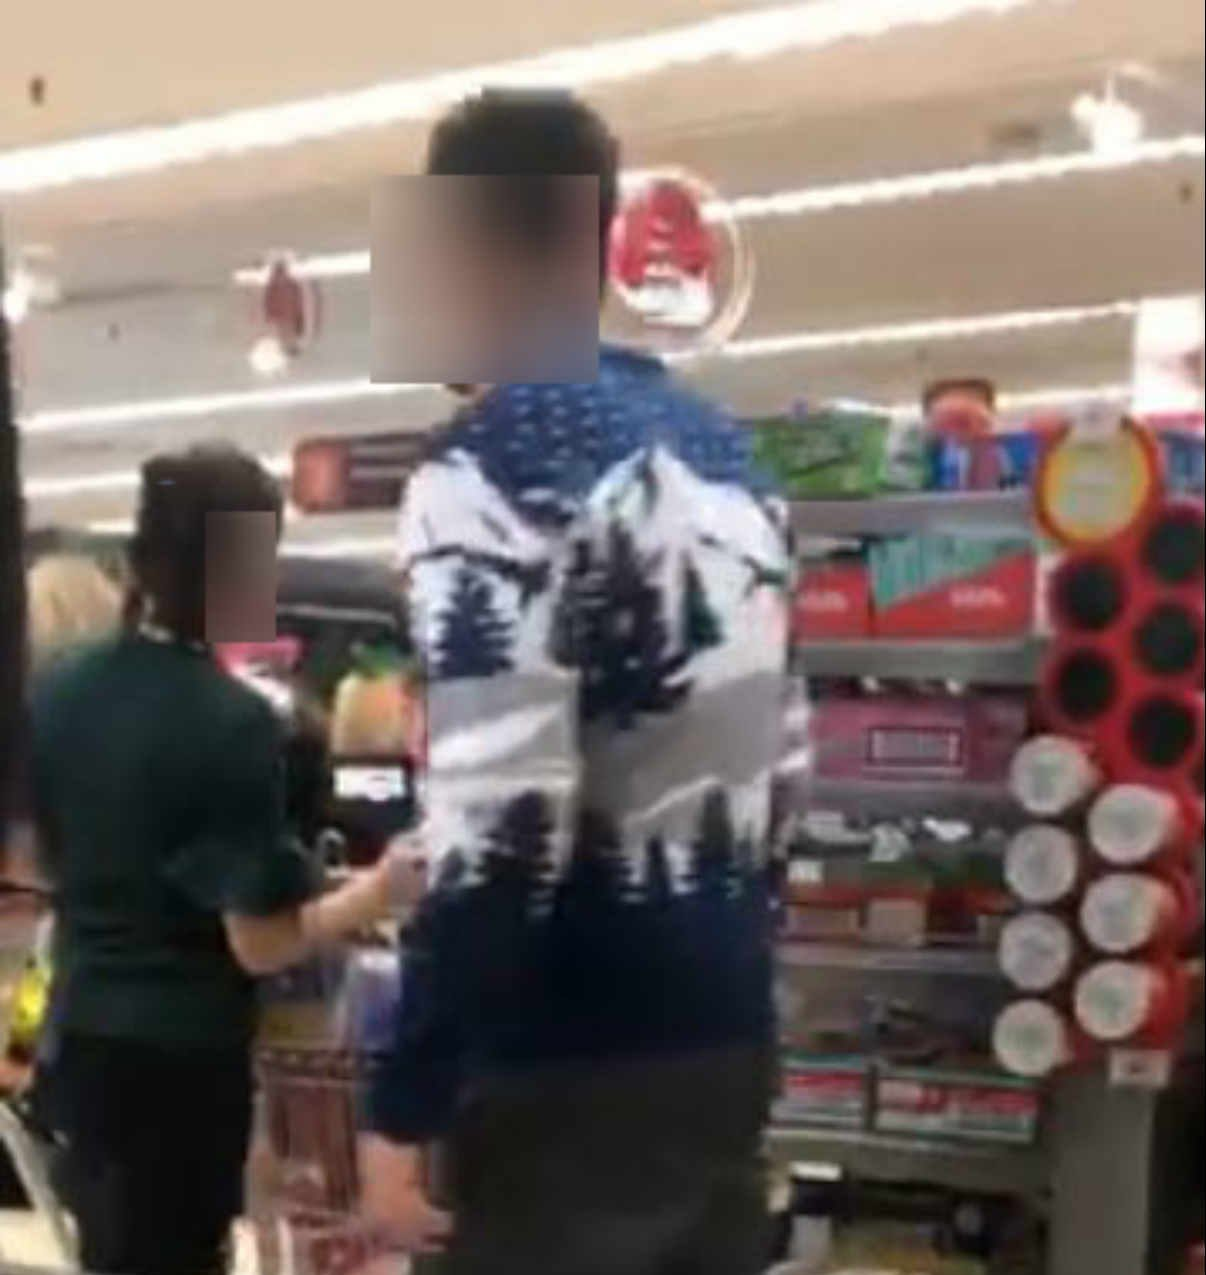 VIDEO shows the moment a bid by Travellers to donate to a food bank went wrong after Sainsbury's staff refused to appear in their video. The Travellers claim their goodwill gesture was rejected because of discrimination. But Sainsbury's deny rejecting the food bank gift, saying staff offered to film them with their donation and refunded their cash when they declined. The video has been watched almost 140,000 times online and prompted a debate between those accusing the firm of discrimination and those who reckon the travellers were just seeking publicity.